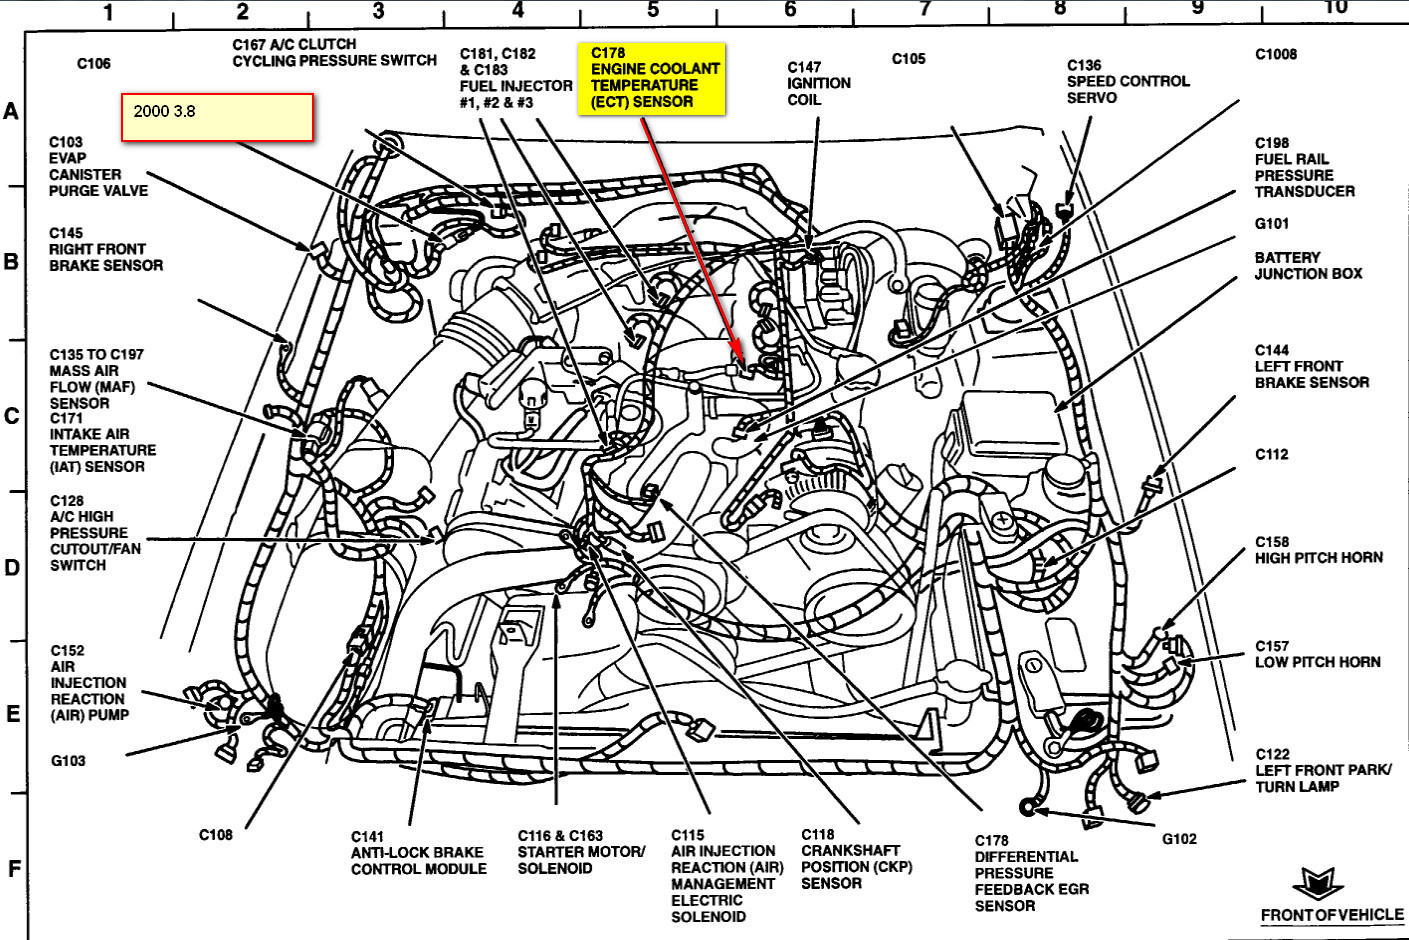 1994 mustang 3 8 engine diagram - wiring diagrams justify dear-silk -  dear-silk.olimpiafirenze.it  dear-silk.olimpiafirenze.it